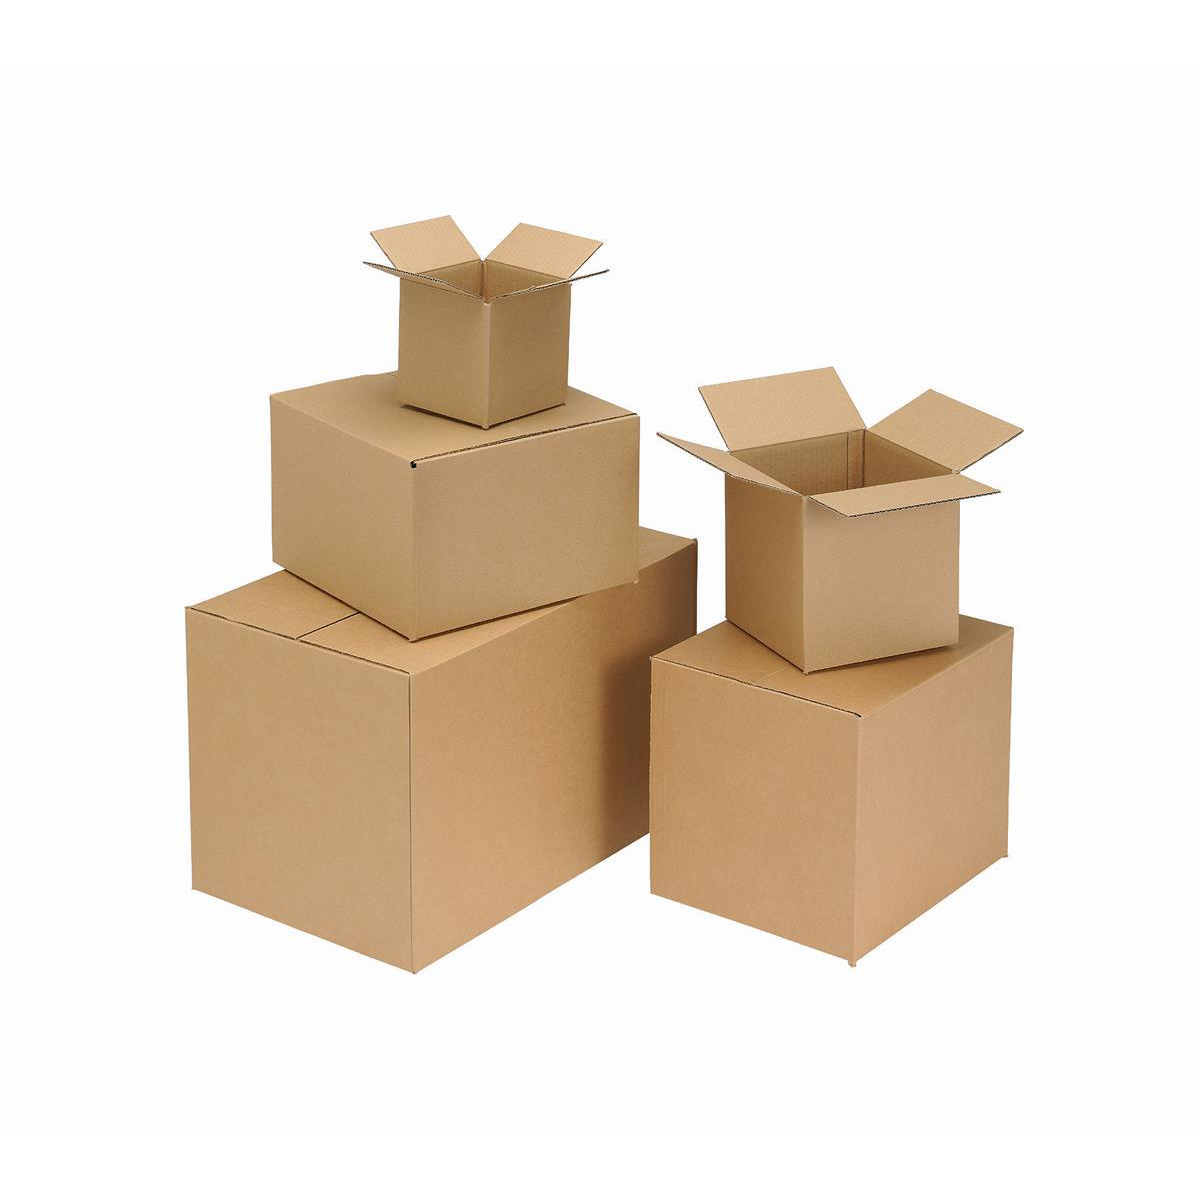 Packaging boxes Packing Carton Single Wall Strong Flat Packed 305x229x229mm Brown Pack 25